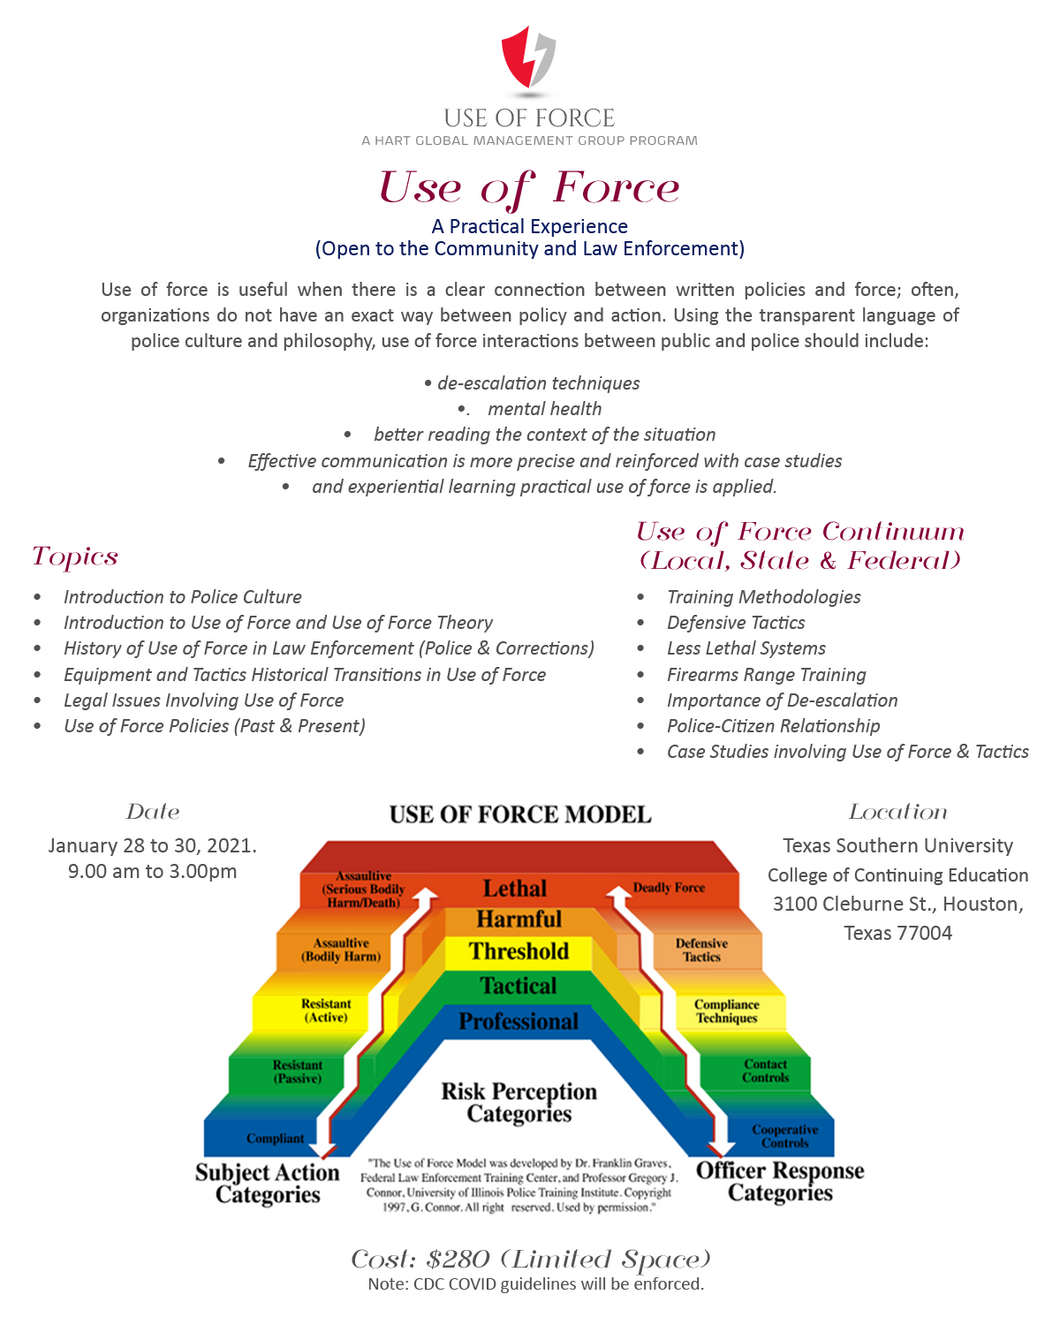 Use of Force: A Practical Experience (Open to the Community and Law Enforcement)